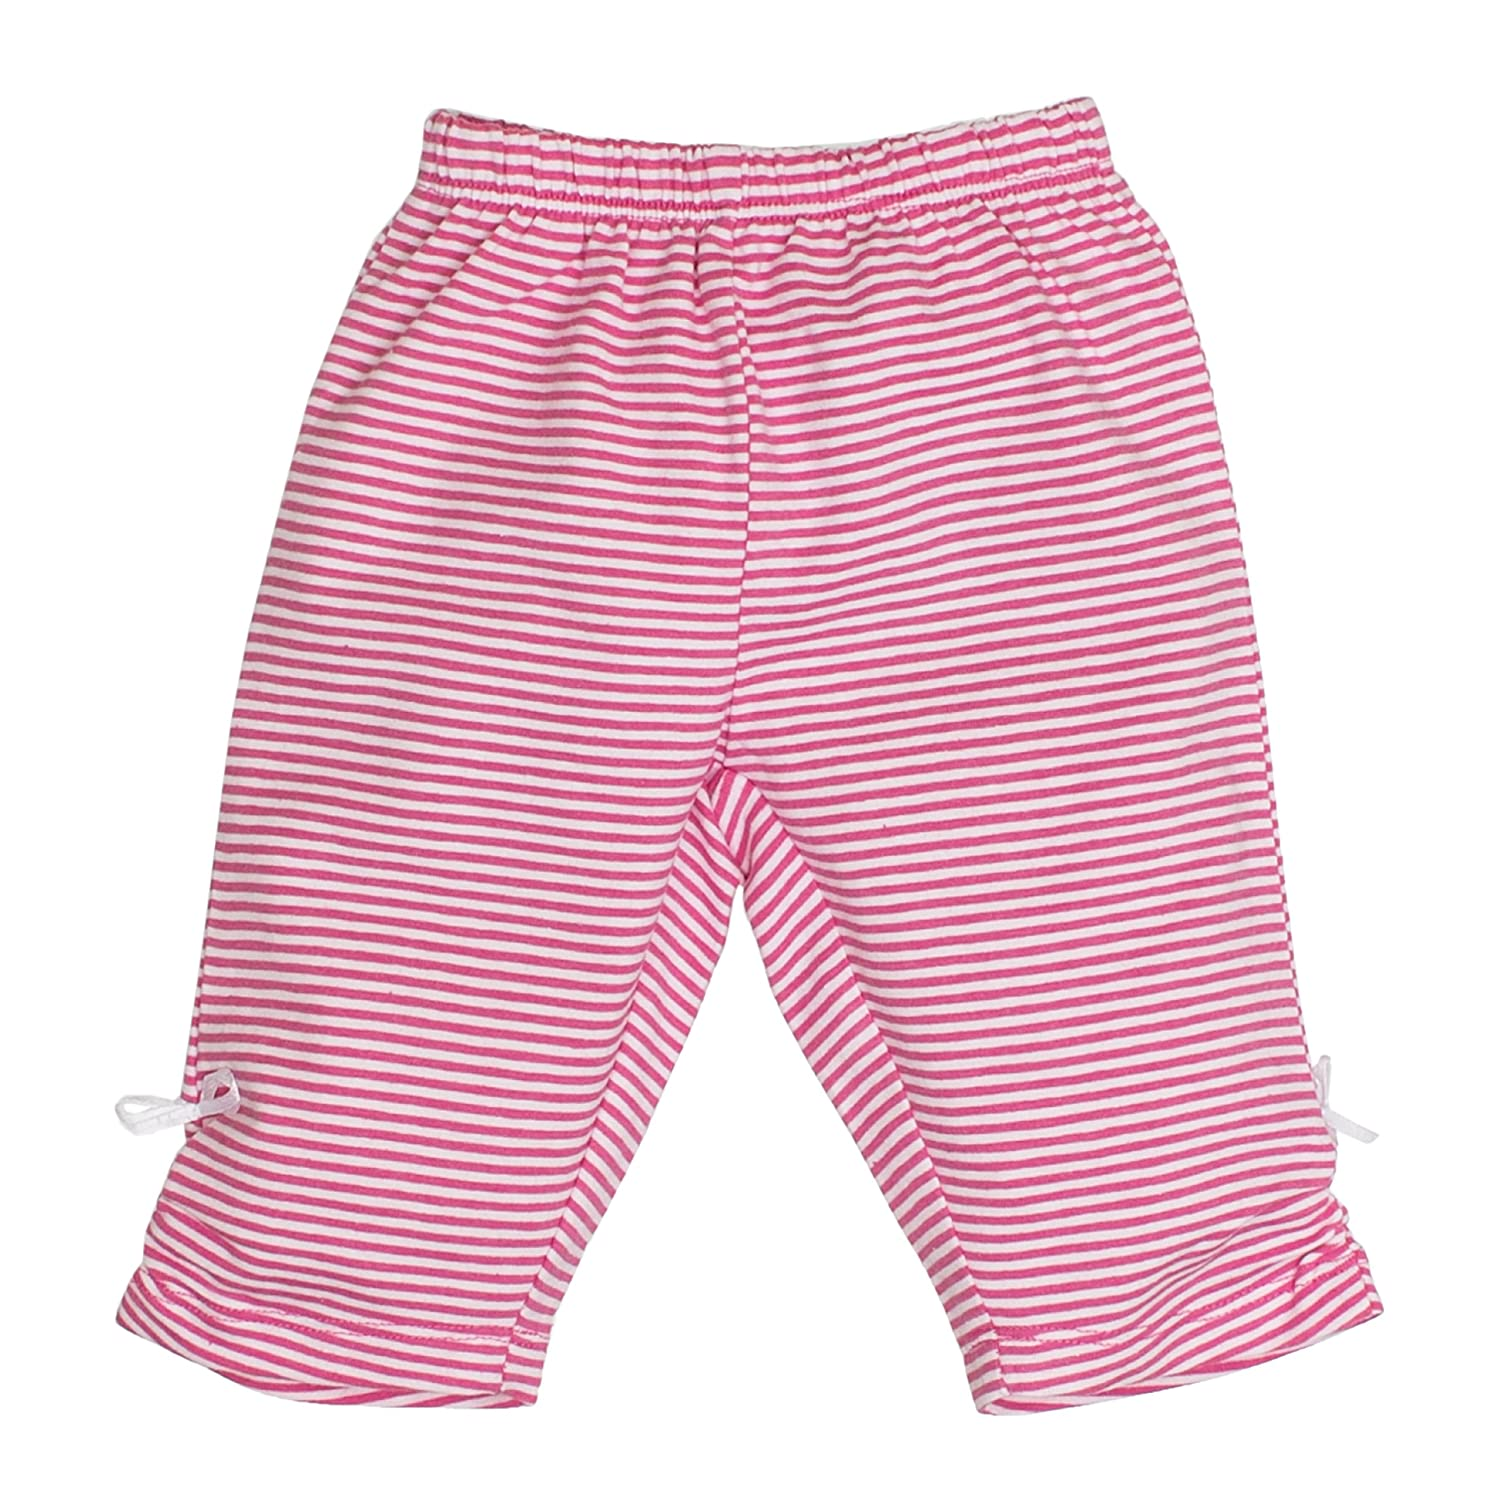 Salt & Pepper Baby Girls' B Capri Beach Stripe Shorts SALT AND PEPPER 73214214